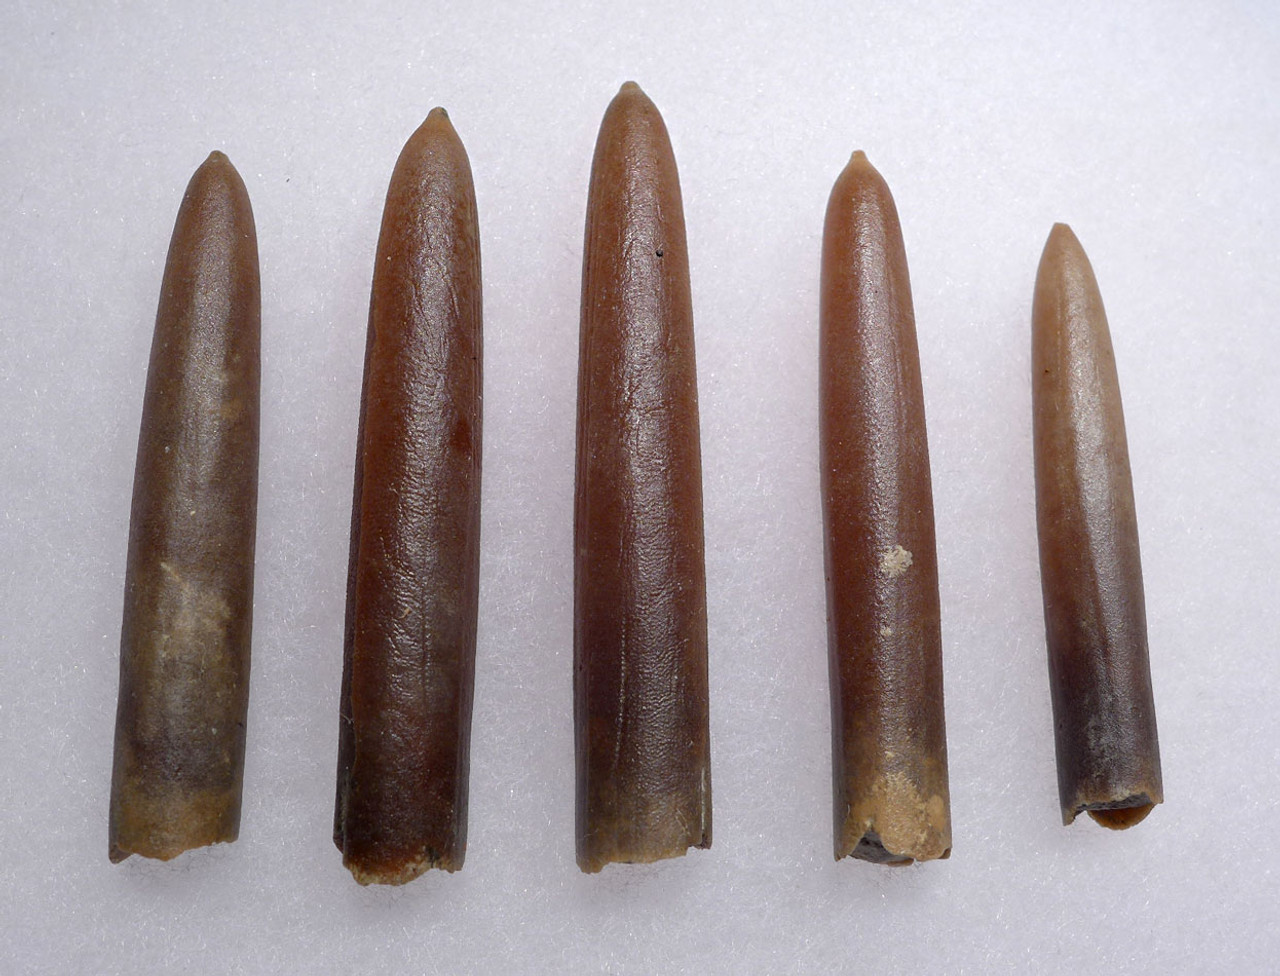 FIVE NATURAL GONIOTEUTHIS SOLID CALCITE BELEMNITES FROM THE CRETACEOUS PERIOD *BEL102